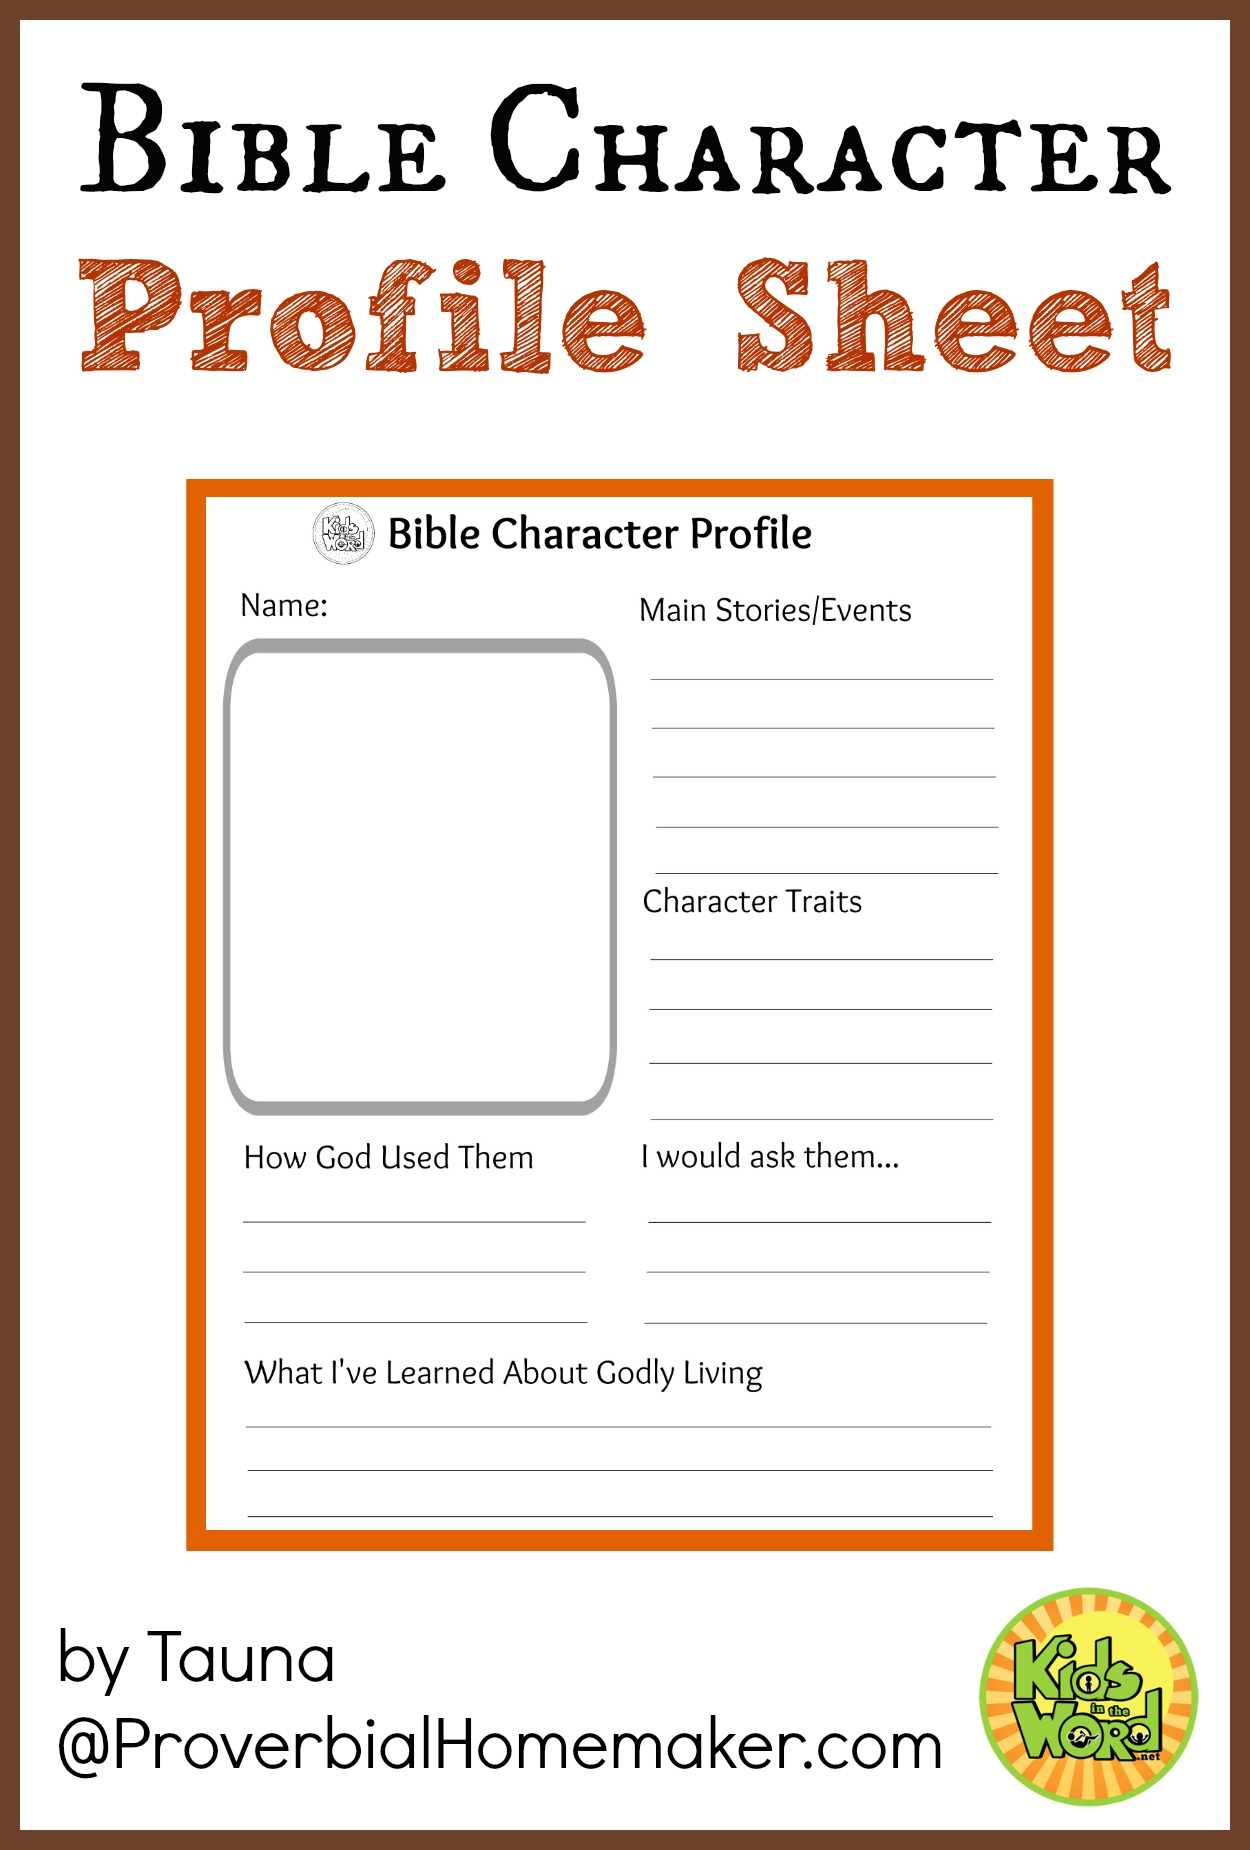 Free Bible Study Worksheets For Adults – Free Printable Bible Study Worksheets